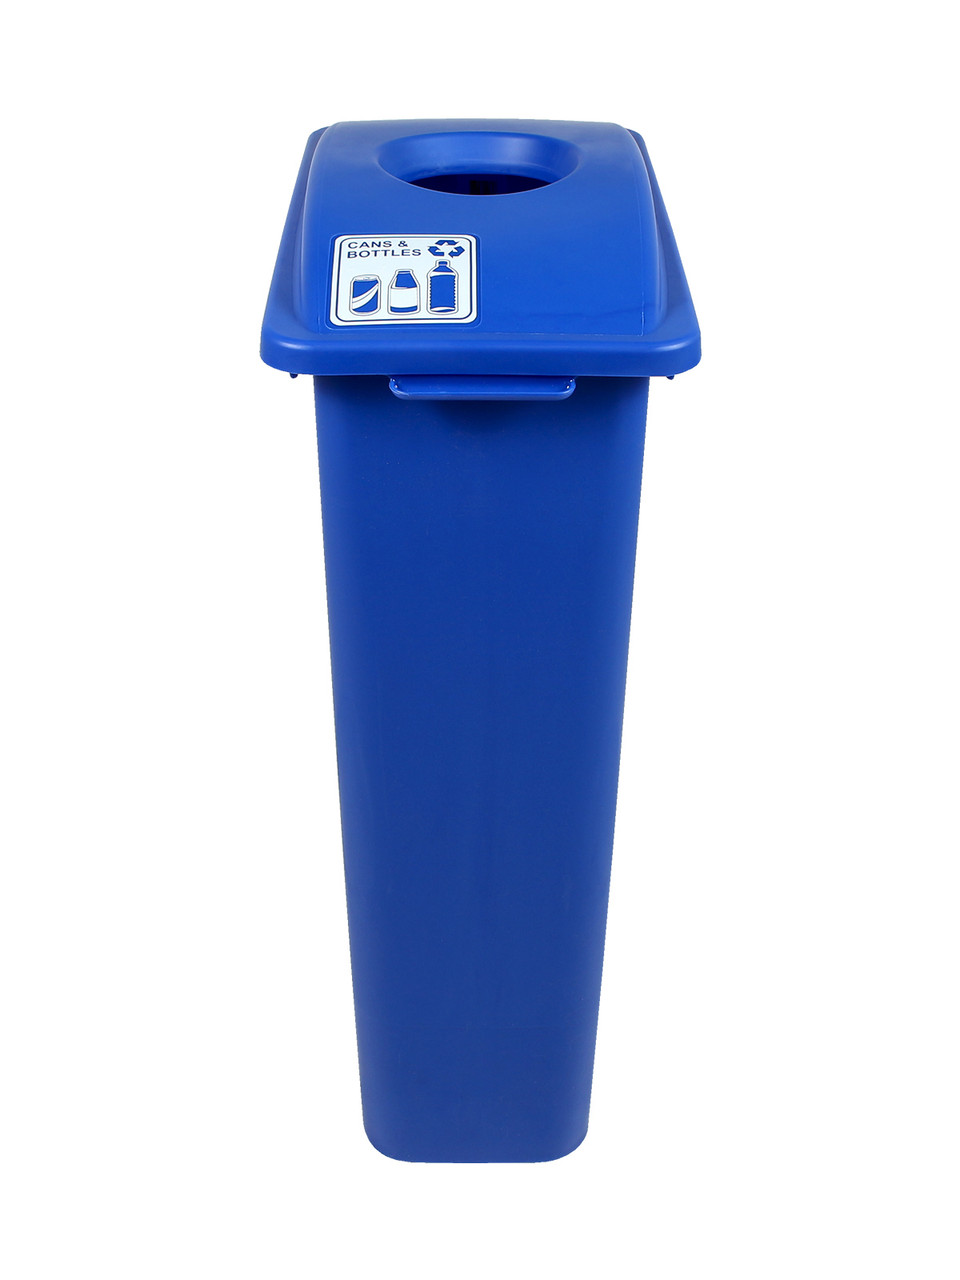 23 Gallon Blue Skinny Simple Sort Recycle Bin